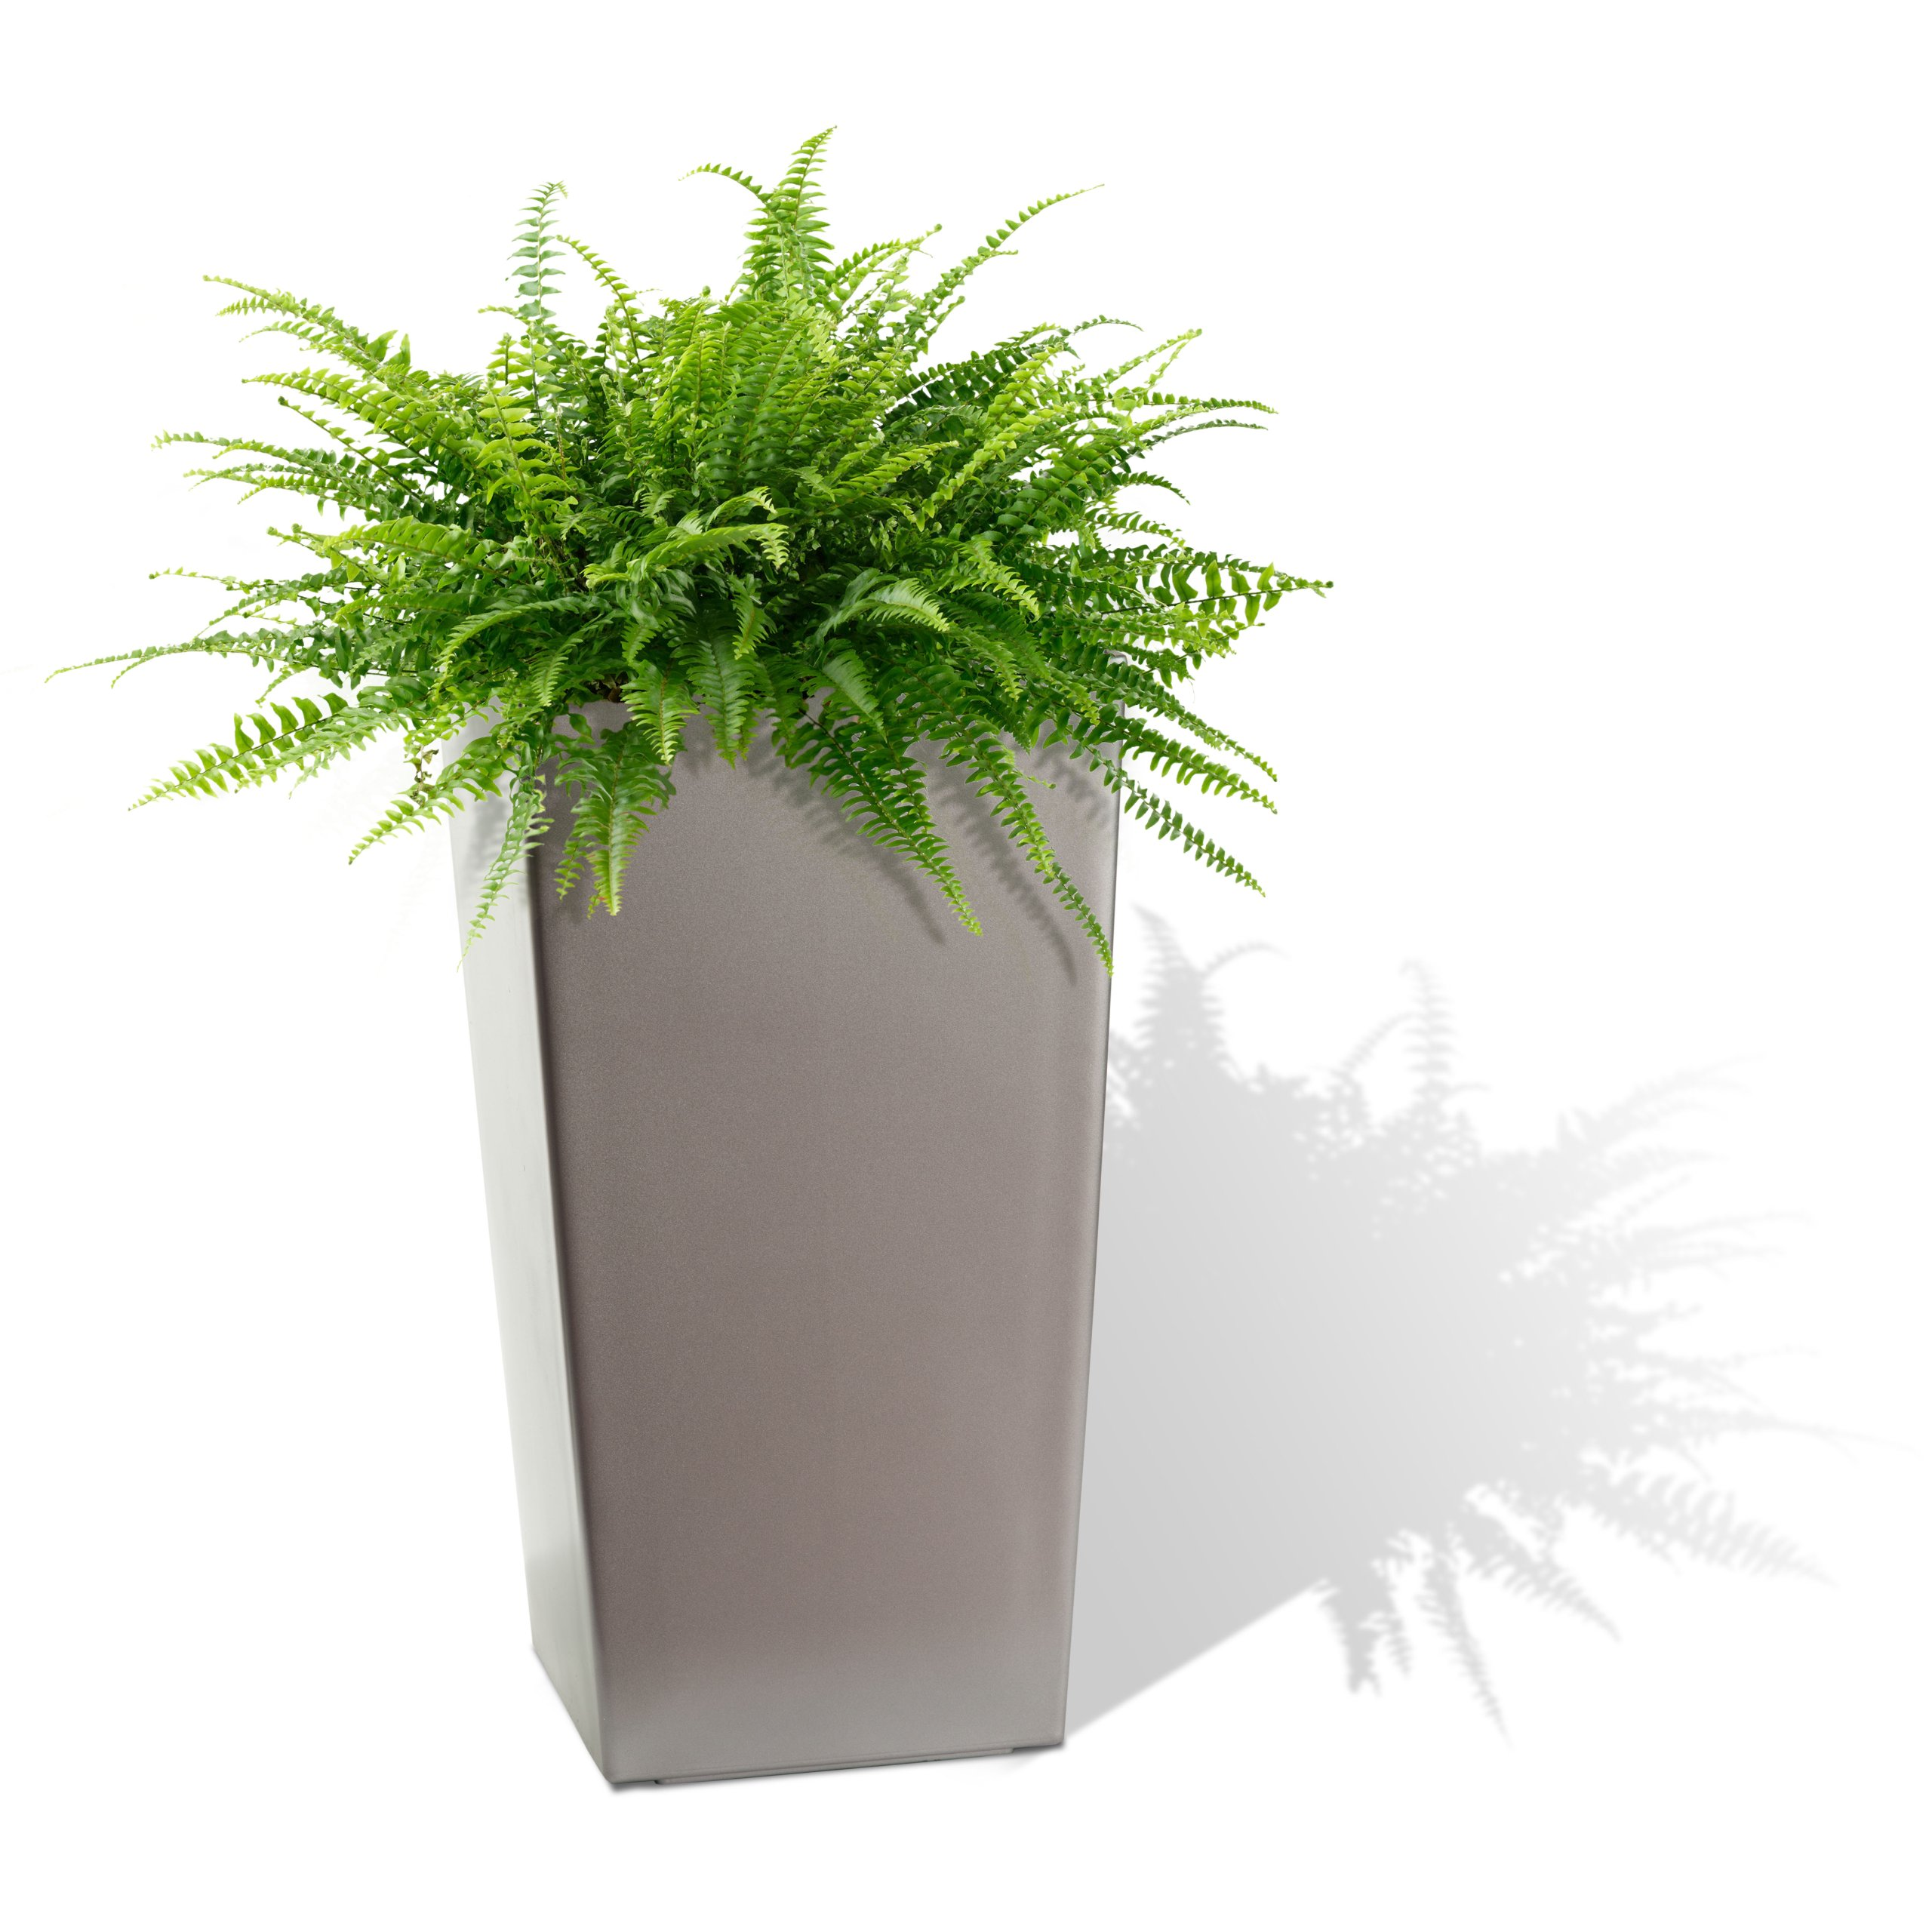 Algreen 11205 Self Watering Square Modena Planter, 30-Inch, Matte Granite by Algreen